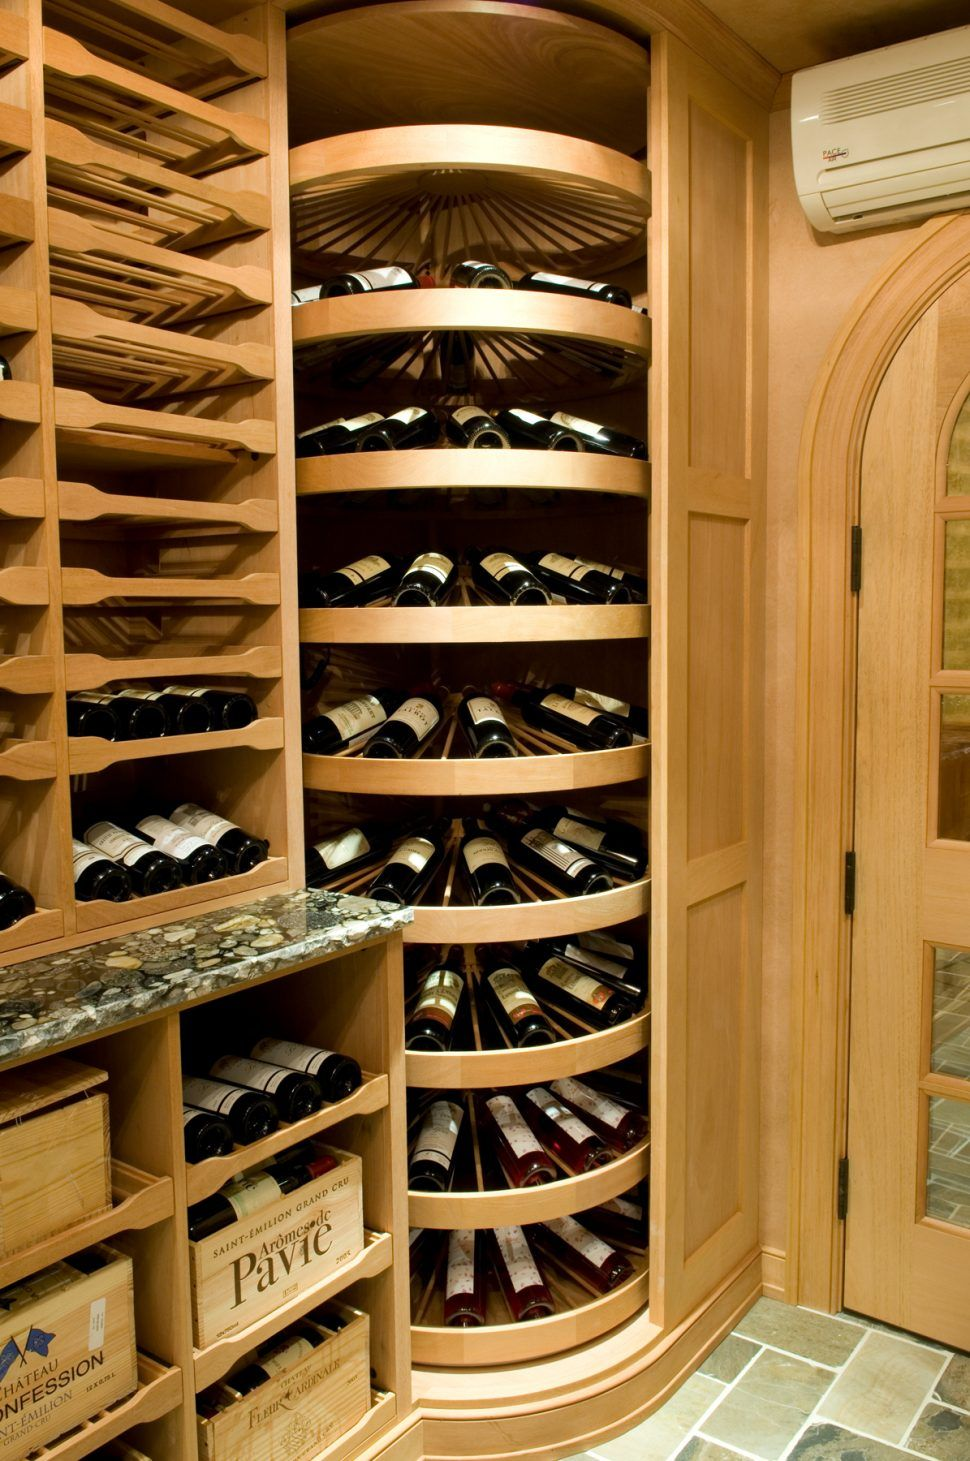 Medium Of Wine Racks America